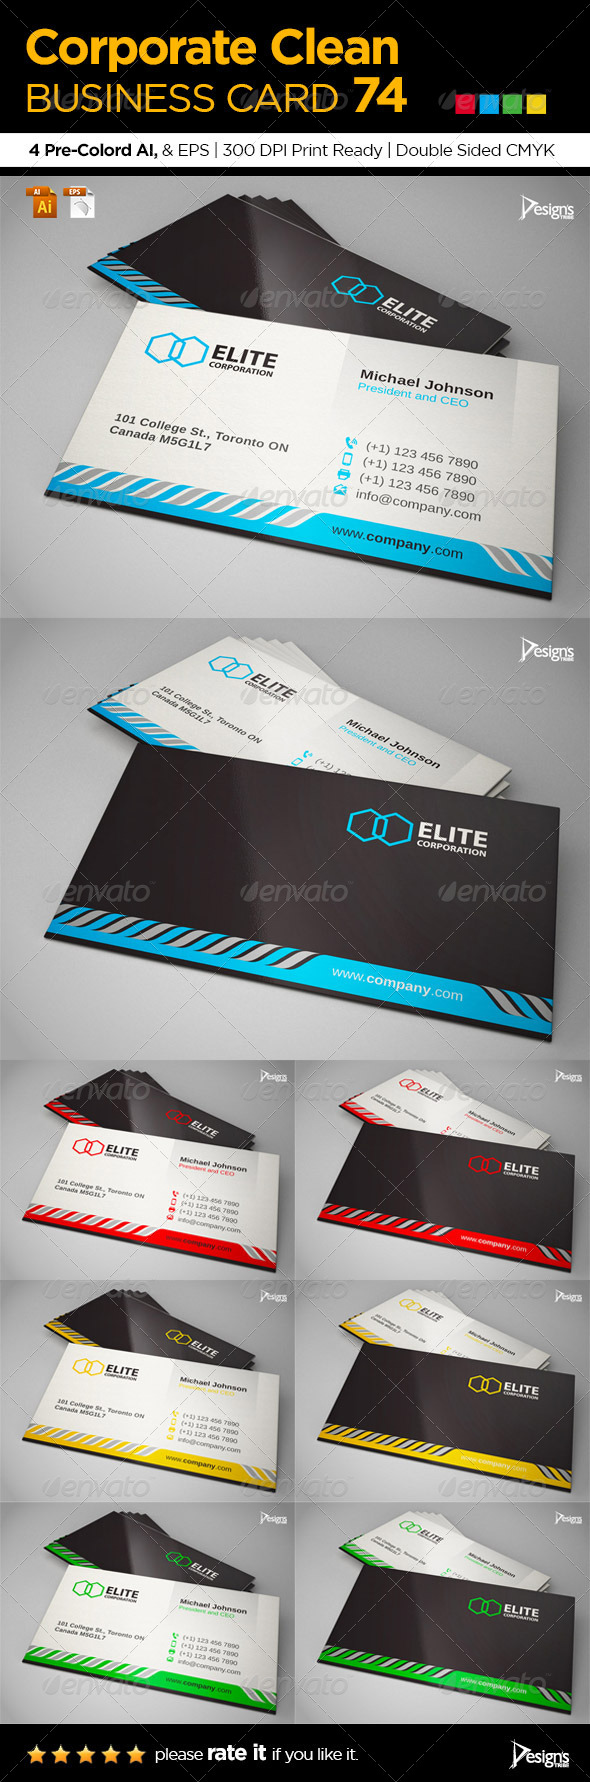 GraphicRiver Corporate Clean Business Card 74 6677258